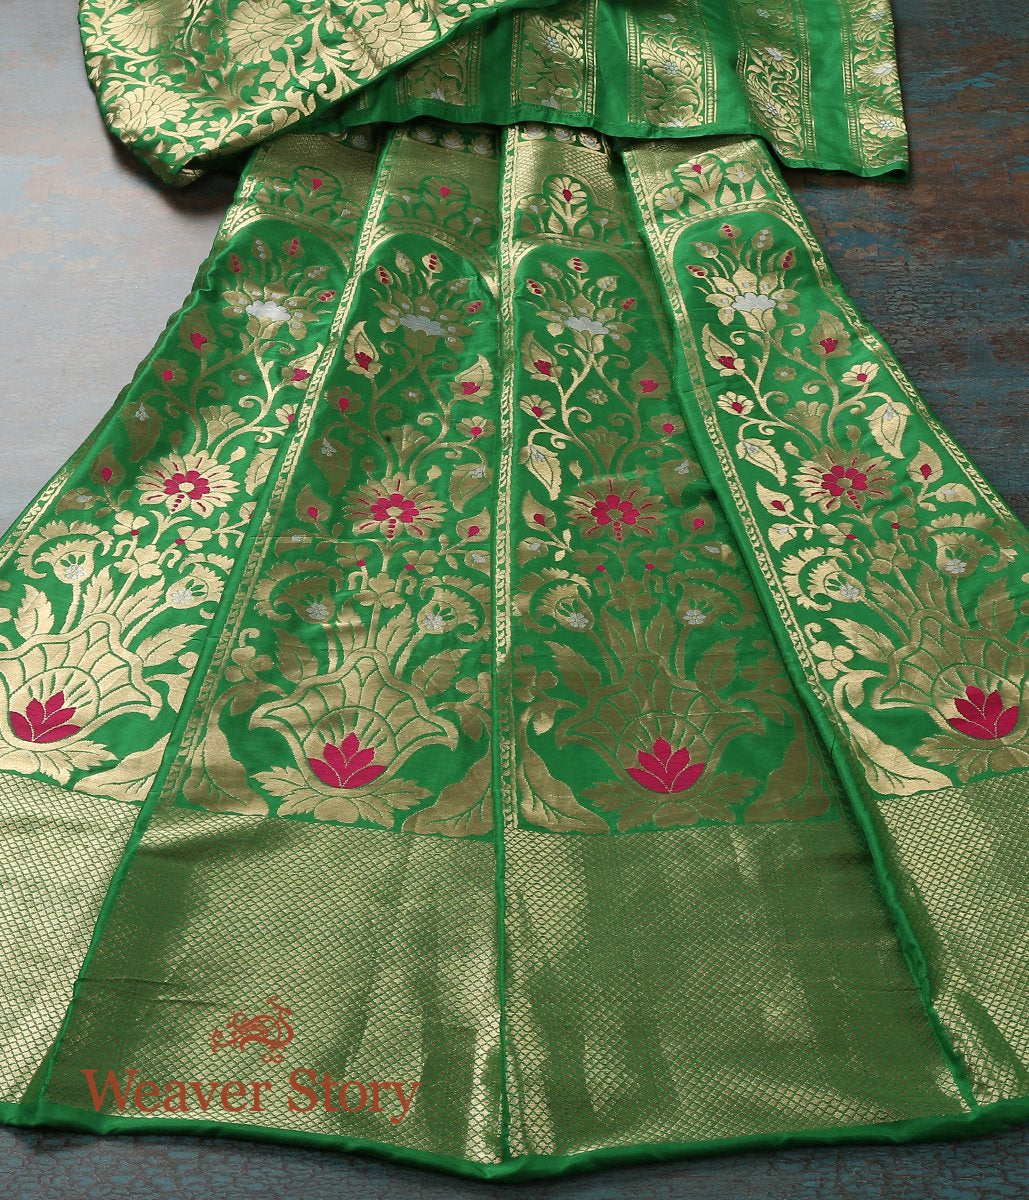 Handwoven Green Banarasi Lehenga with Meenakari